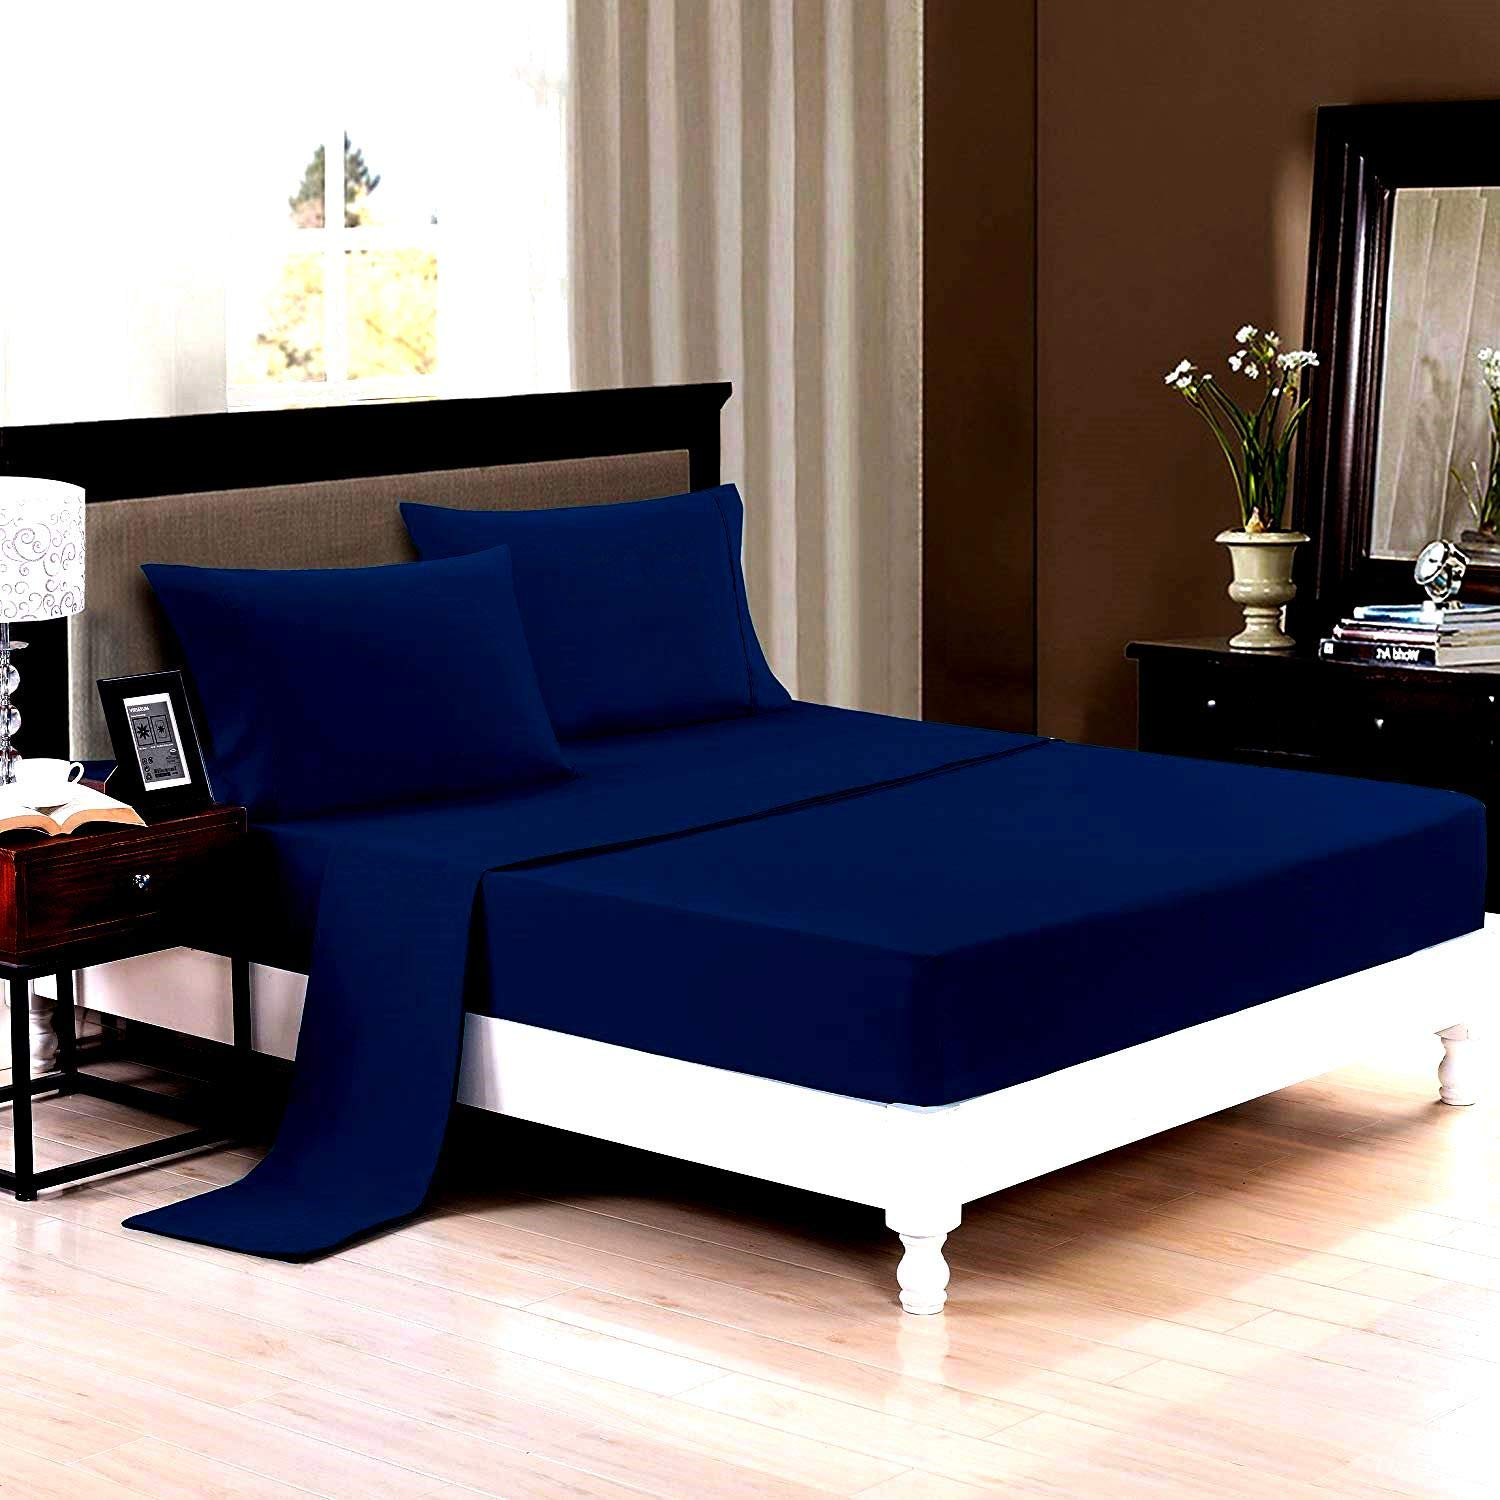 Trance Home Linen Cotton 400TC Plain Bed Sheet with Pillow Cover-Navy Blue